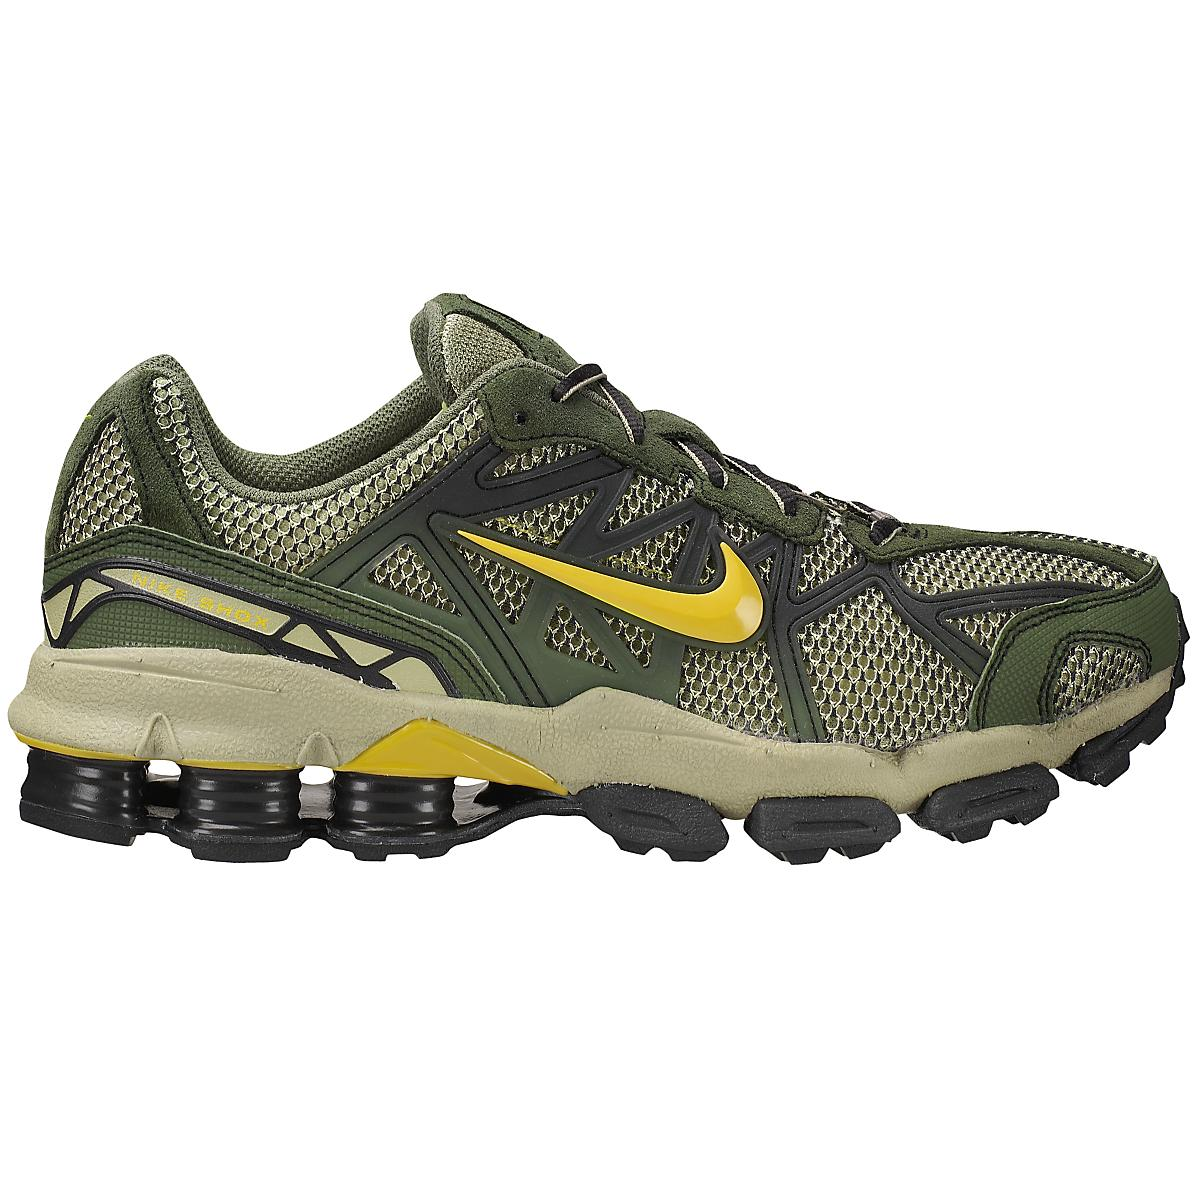 9c0d572bd28 ... Mens Nike Shox Junga Trail Running Shoe at Road Runner Sports . ...